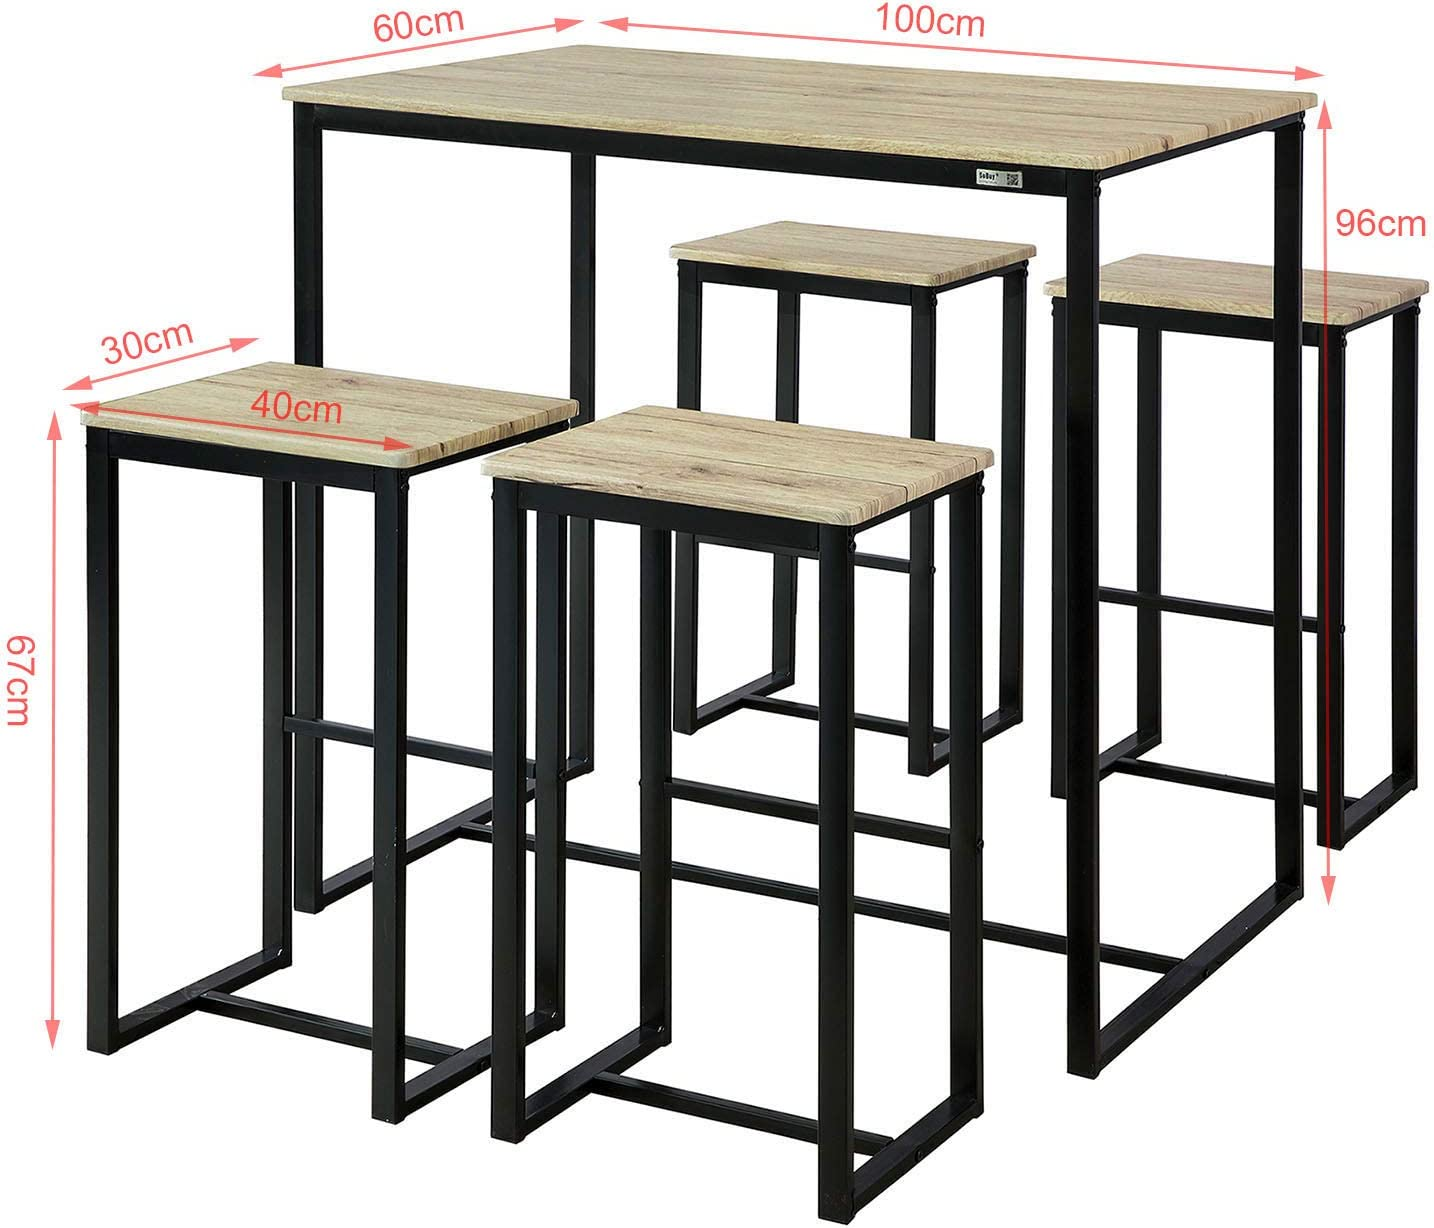 Bar Table with 4 Bar Stools,Kitchen Counter with Bar Chairs 5 Piece Dining Set,Dining Table with 4Stools,Home Kitchen Breakfast Table,Bar Table Set Haotian OGT15-N